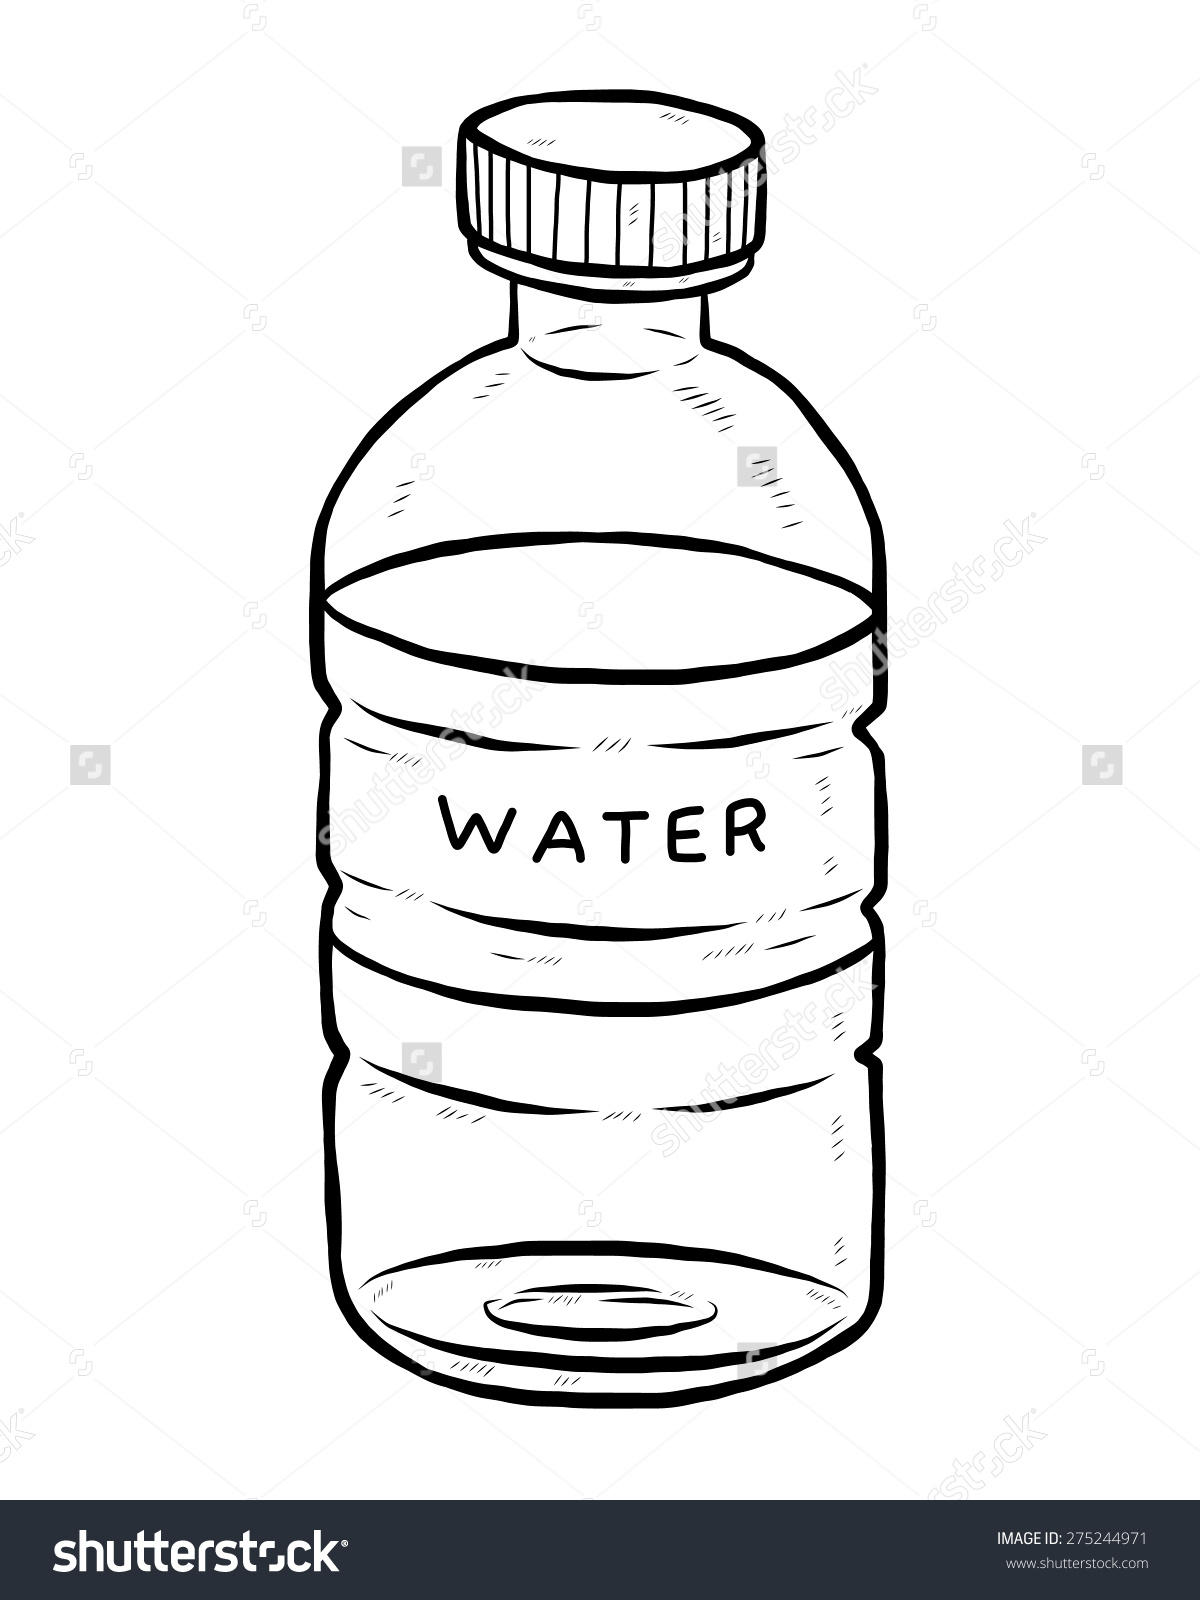 water bottle clipart black white - Clipground  water bottle cl...